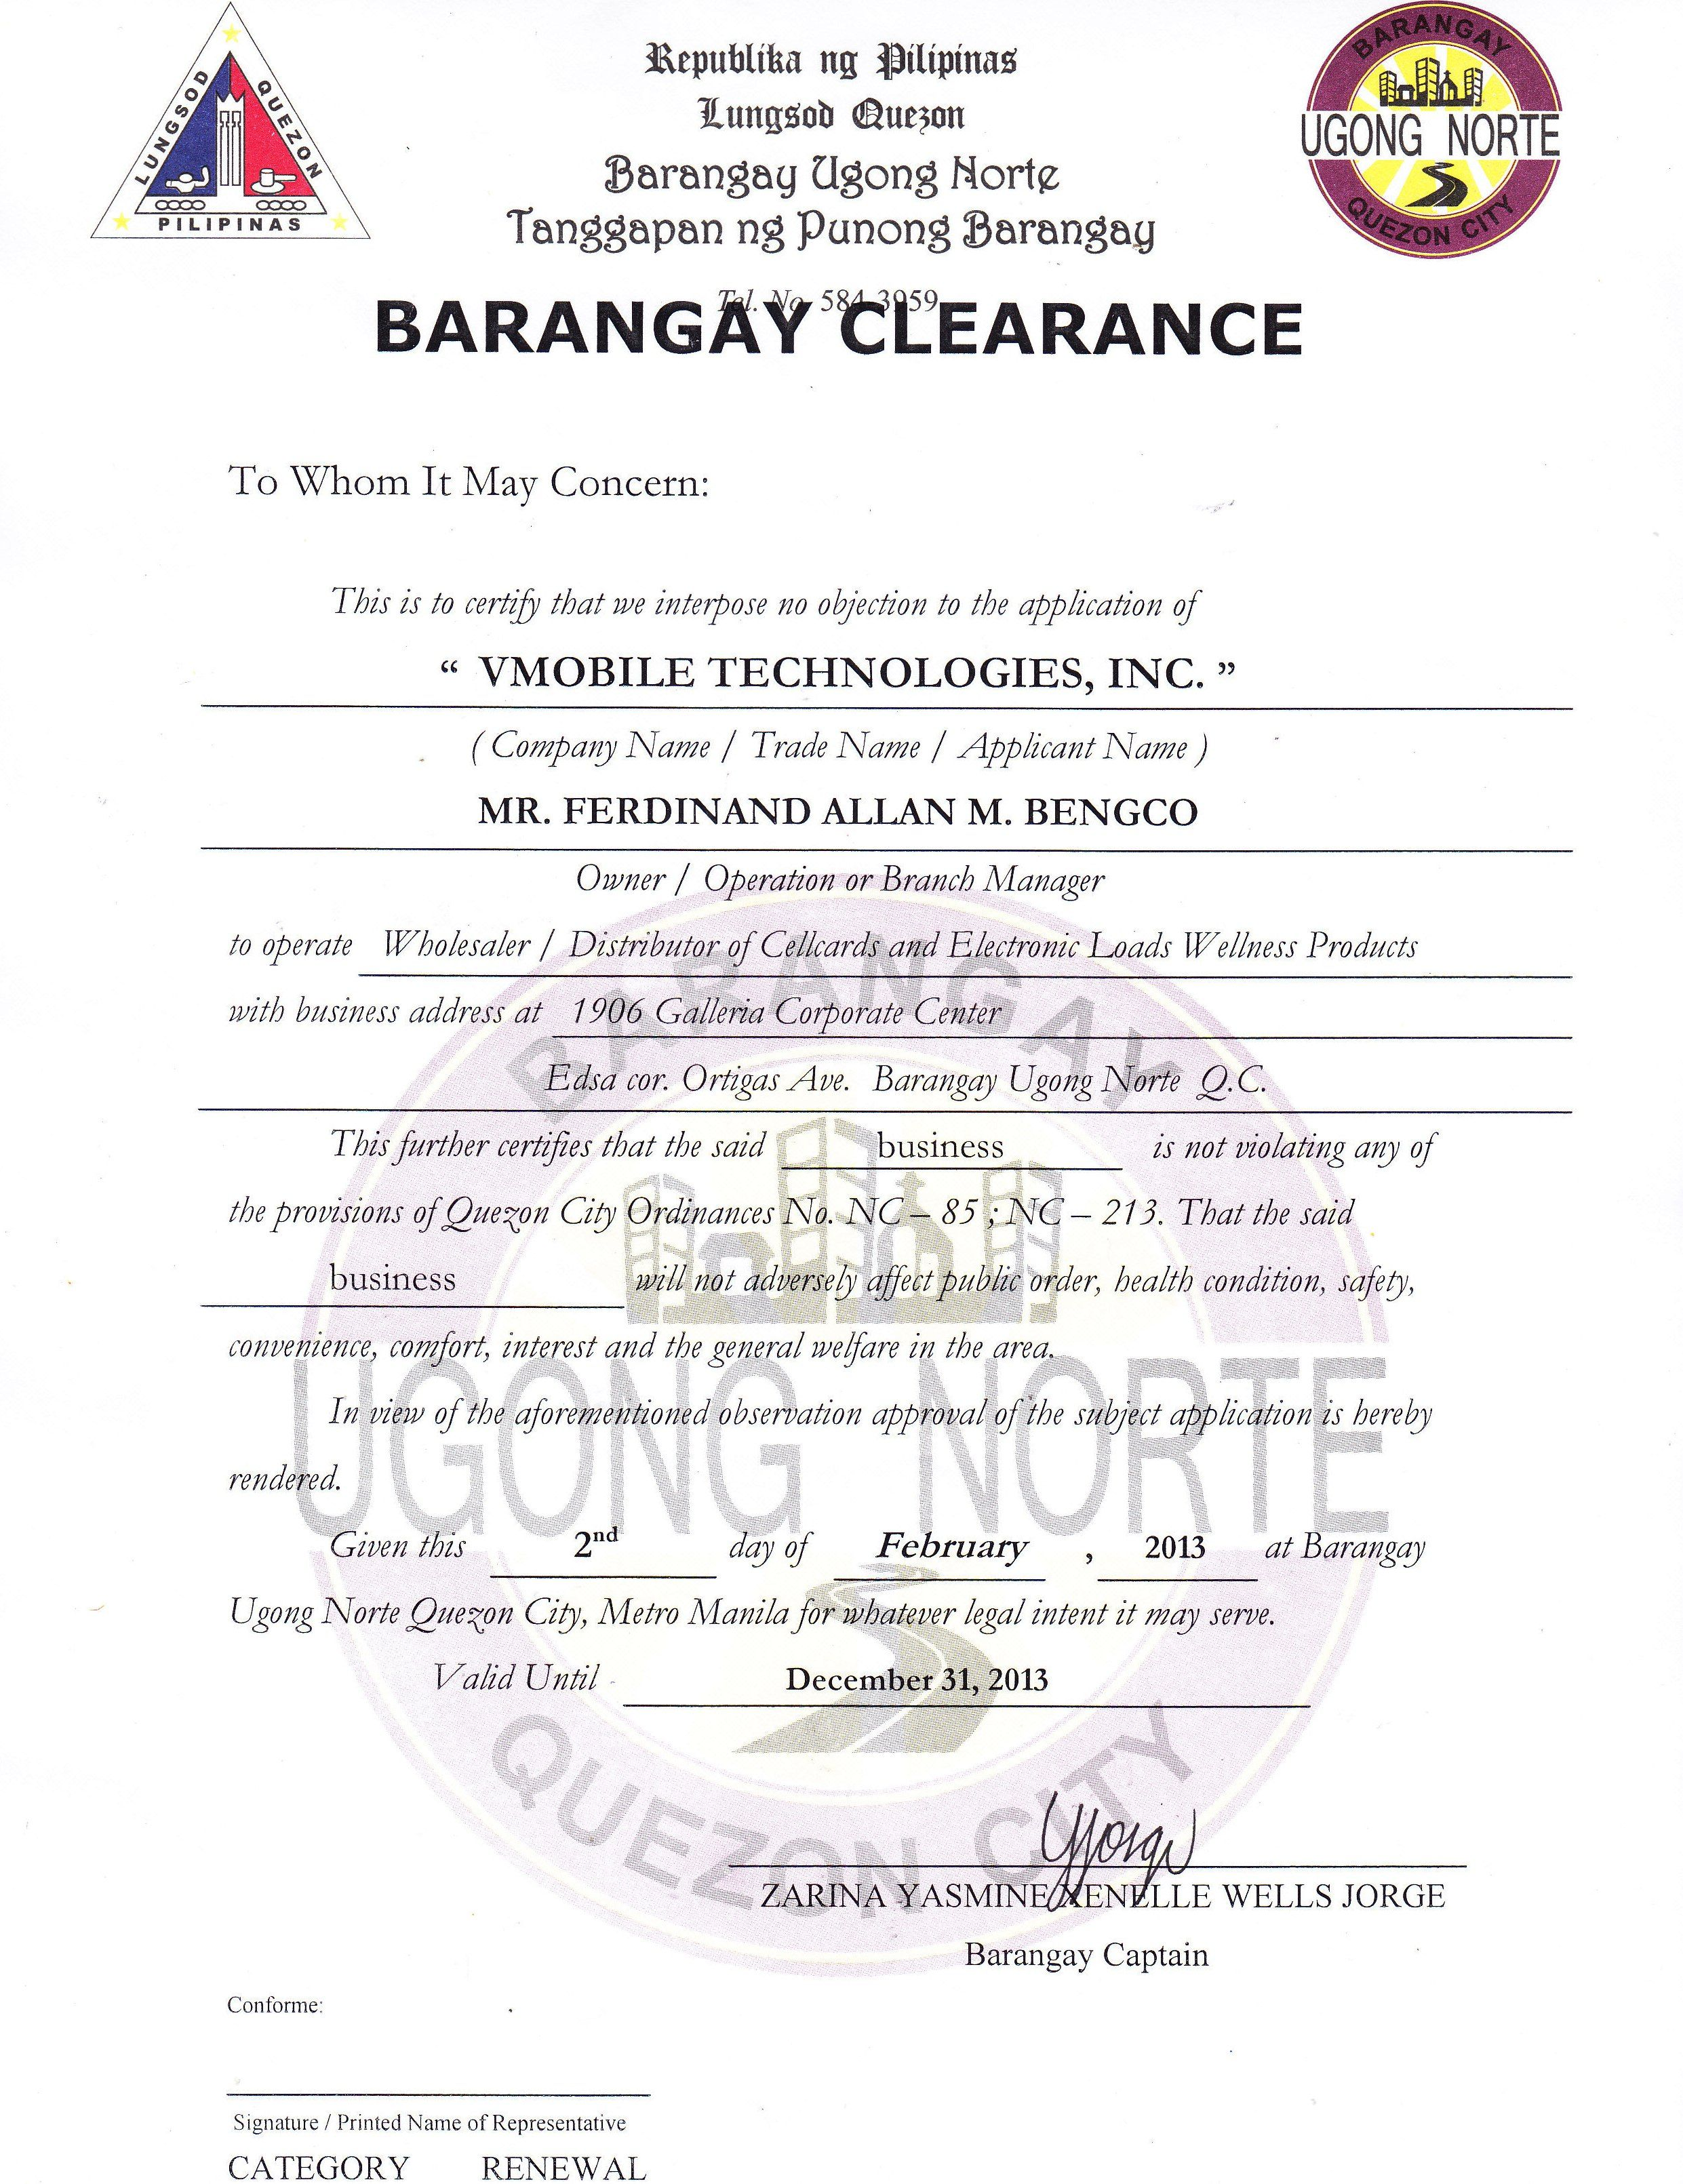 Barangay clearance sample certificate good moral character images barangay clearance sample certificate good moral character images yadclub Gallery